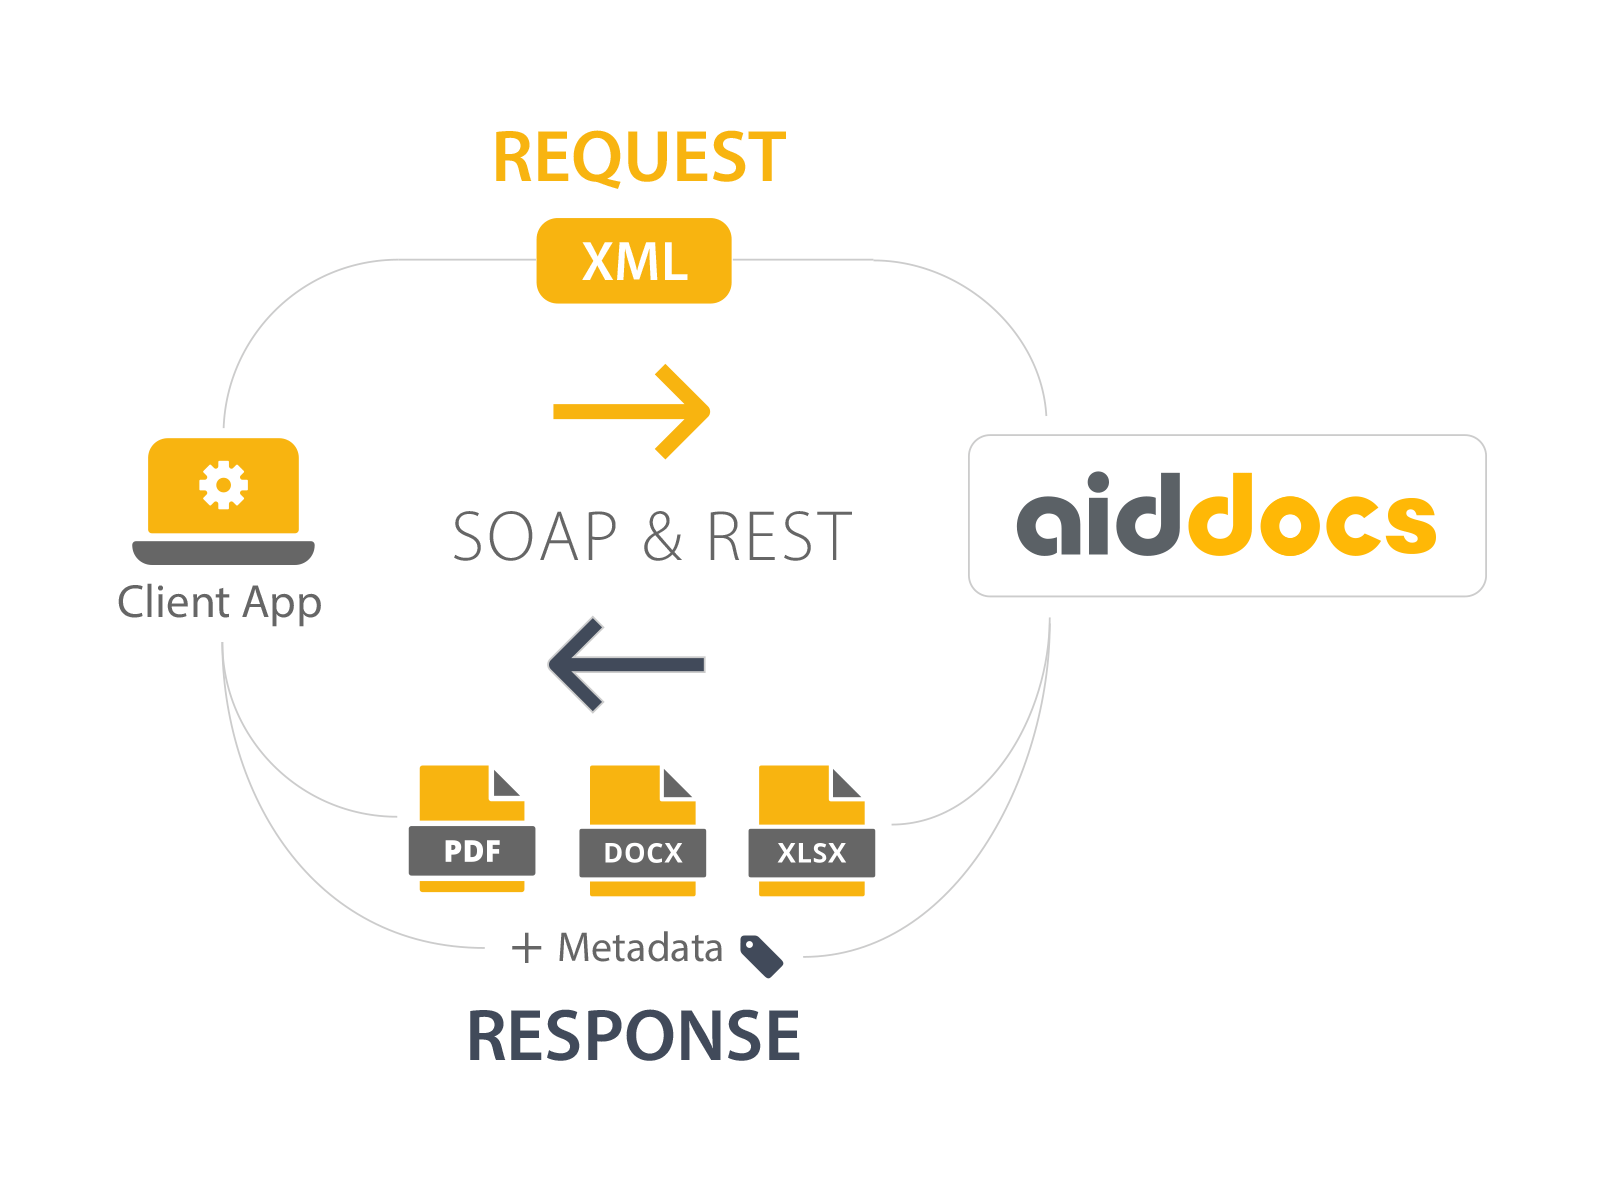 Aiddocs is easy to learn and use.